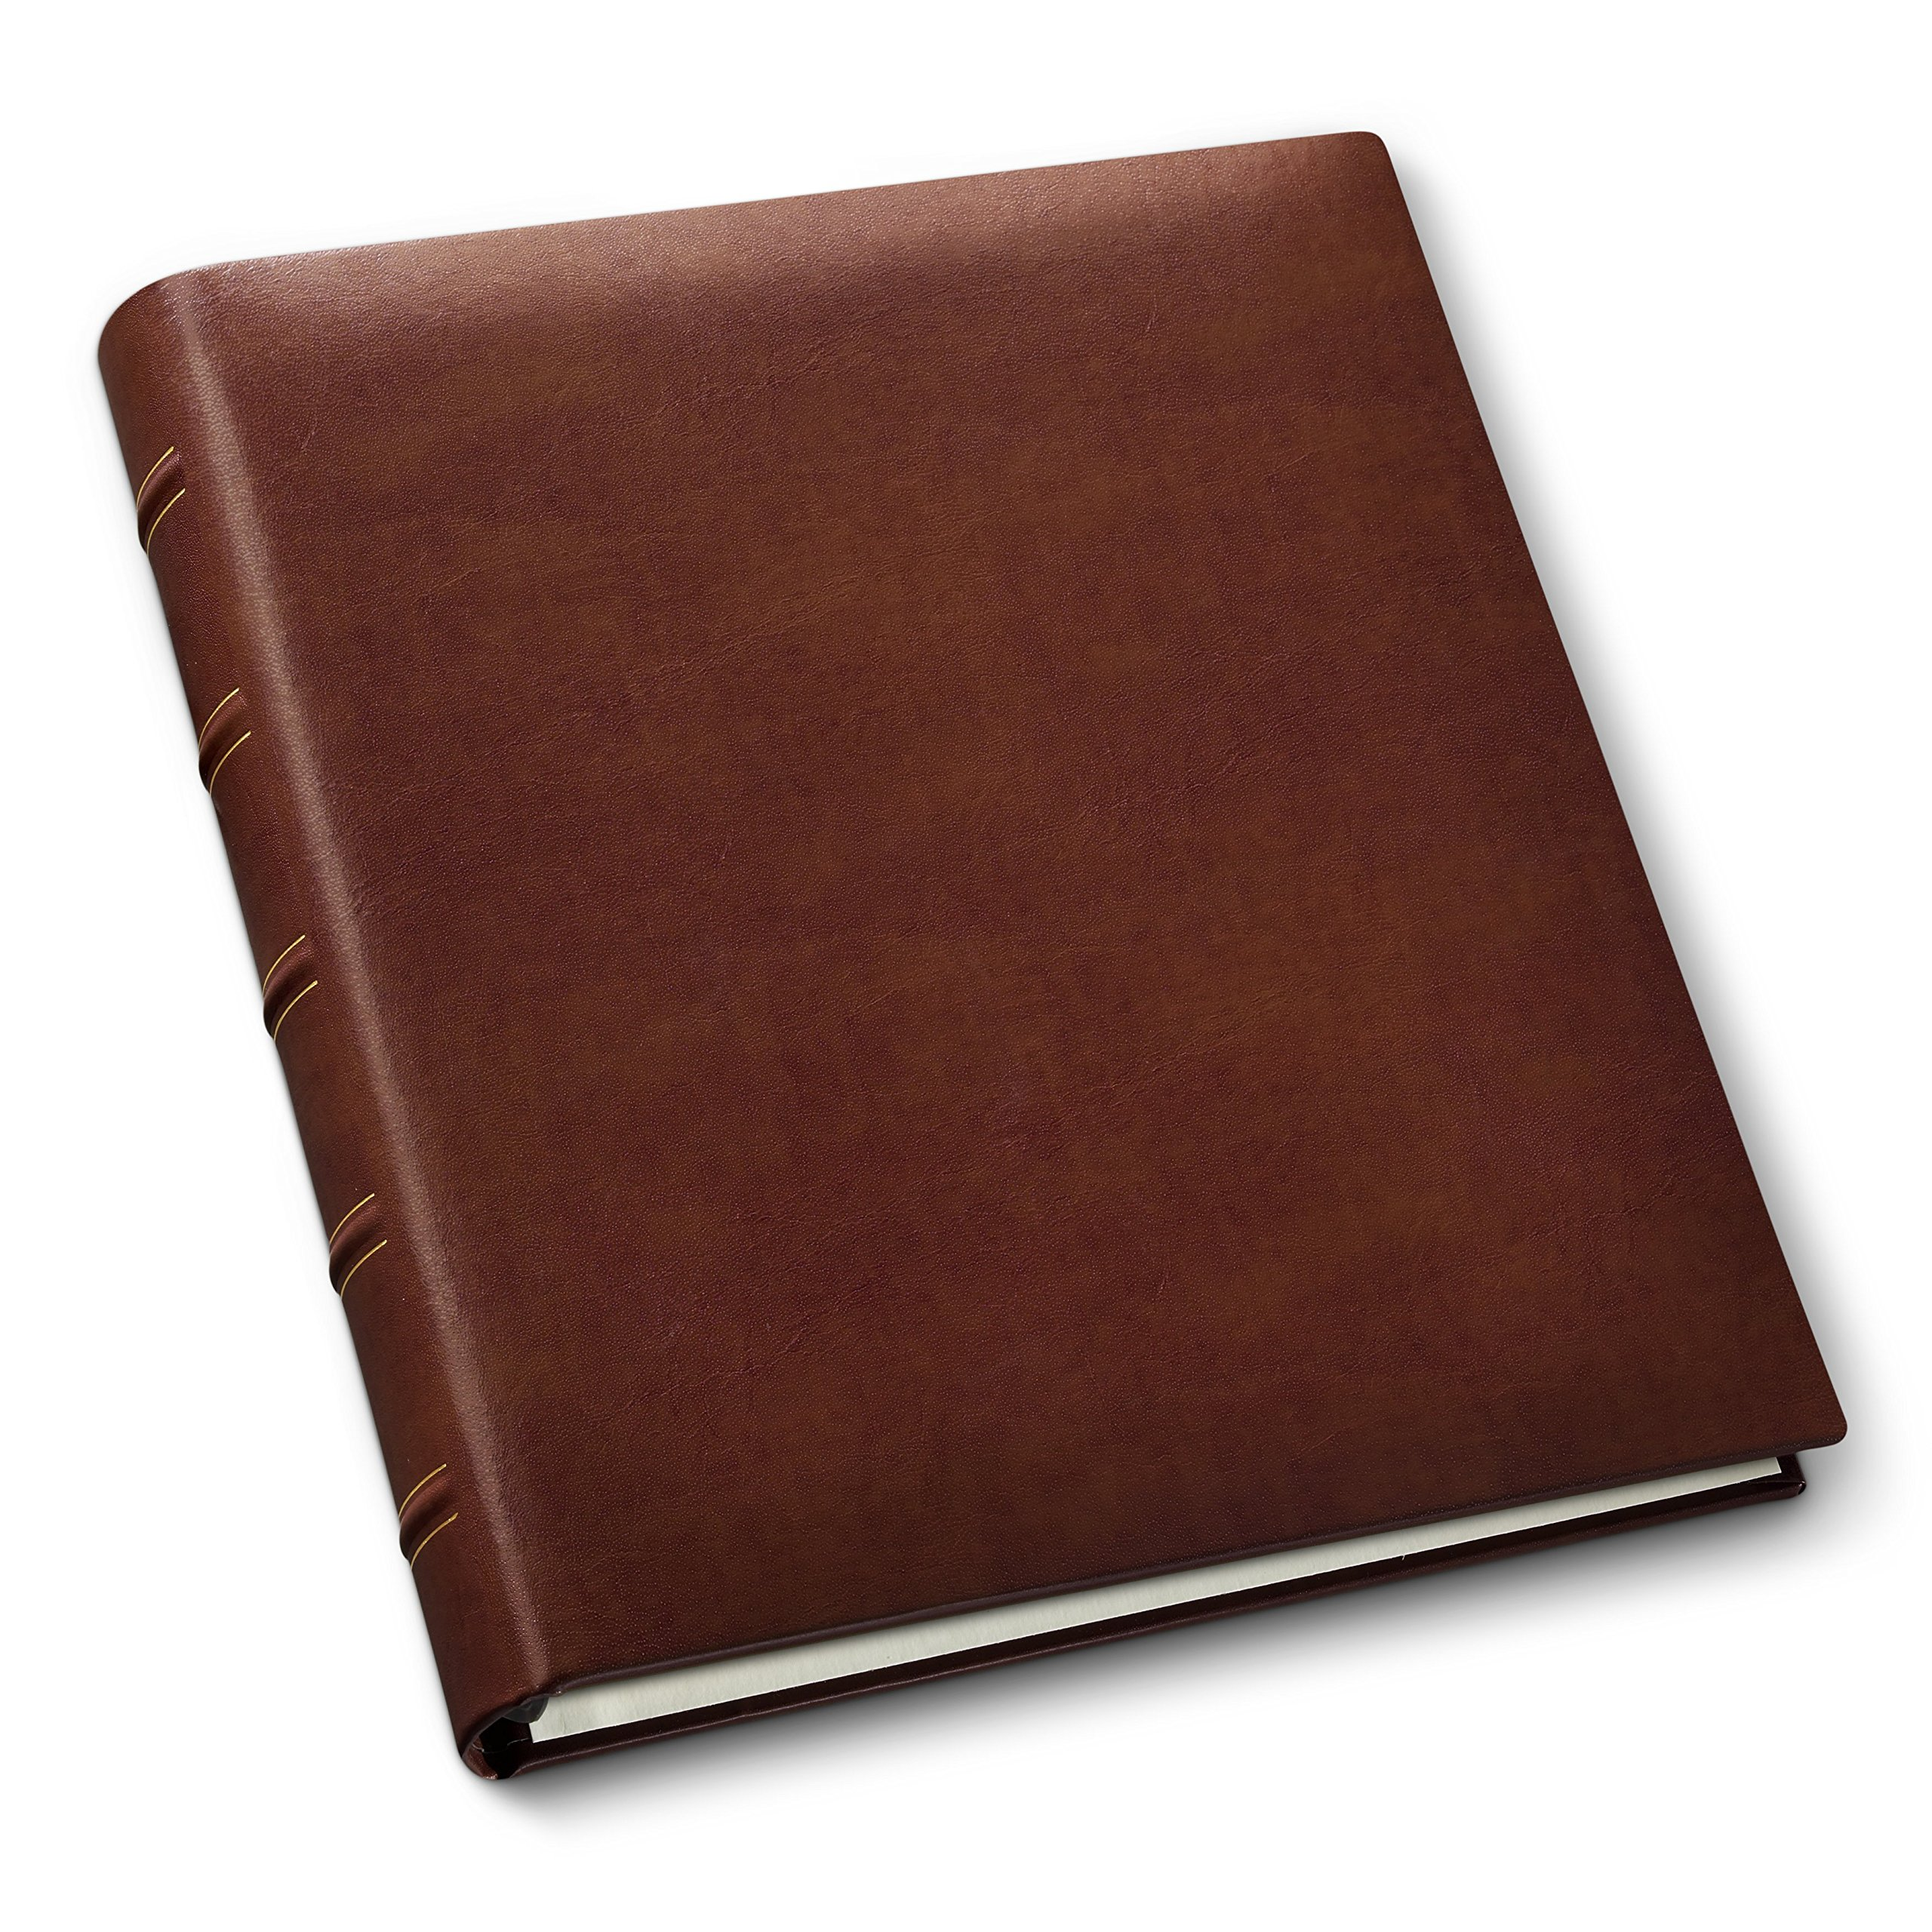 Gallery Leather Classic  Leather Album, British Tan